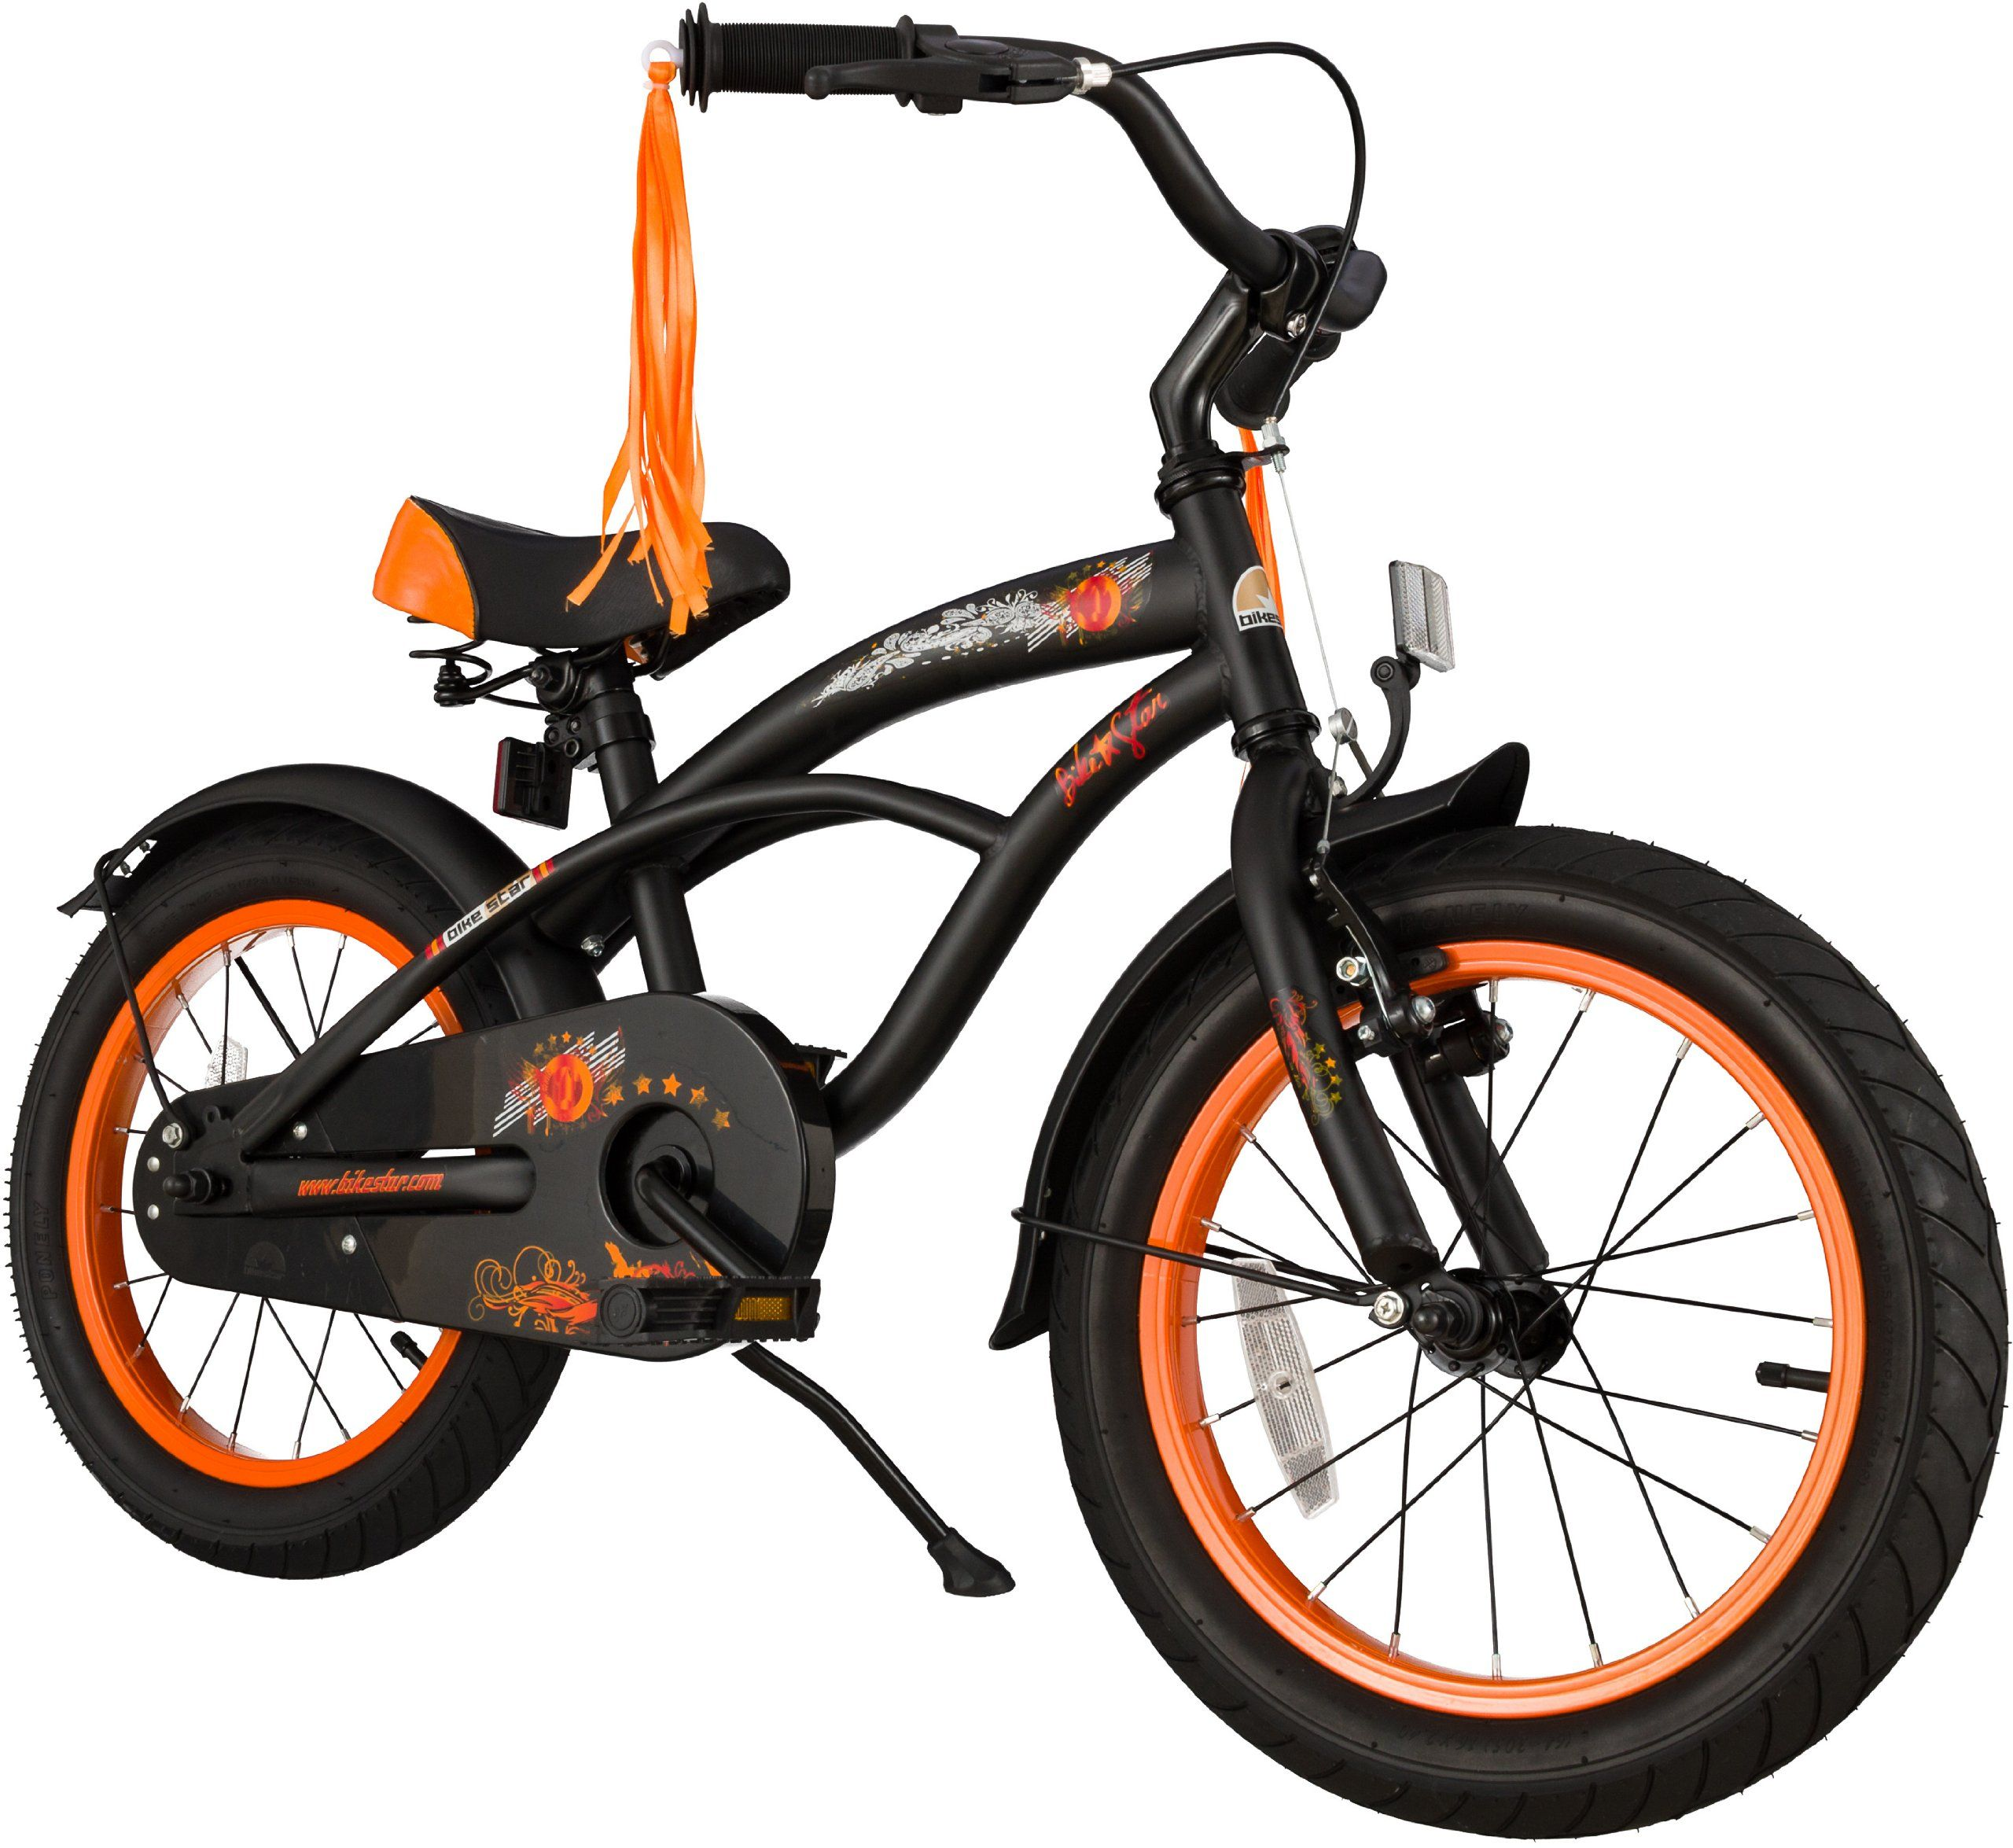 bike star 16 zoll kinder fahrrad cruiser schwarz matt sport freizeit. Black Bedroom Furniture Sets. Home Design Ideas